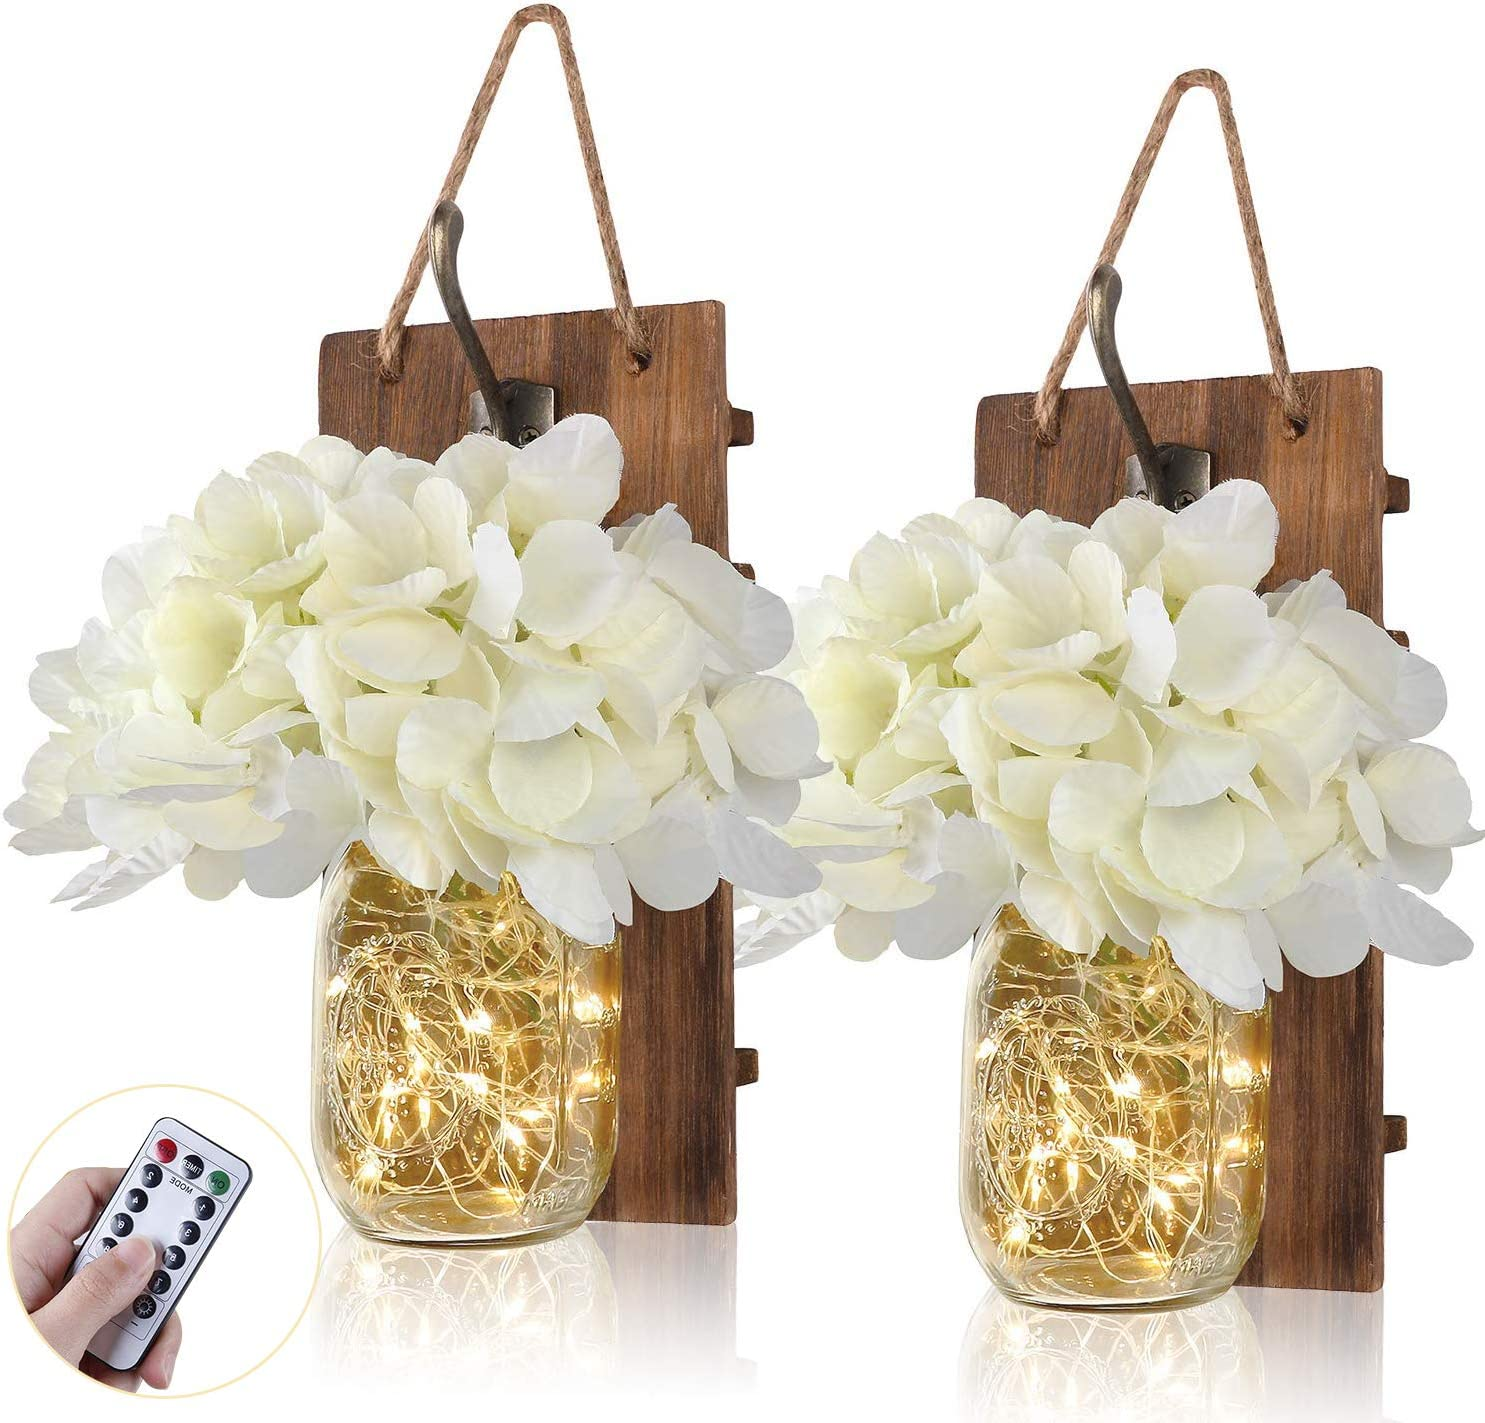 Anpro Rustic Wall Sconces Mason Jar Sconces Handmade Wall Art Hanging Design with Remote Control LED Fairy Lights, Farmhouse Kitchen Decorations Wall Home Decor Living Room Lights Creamy-White